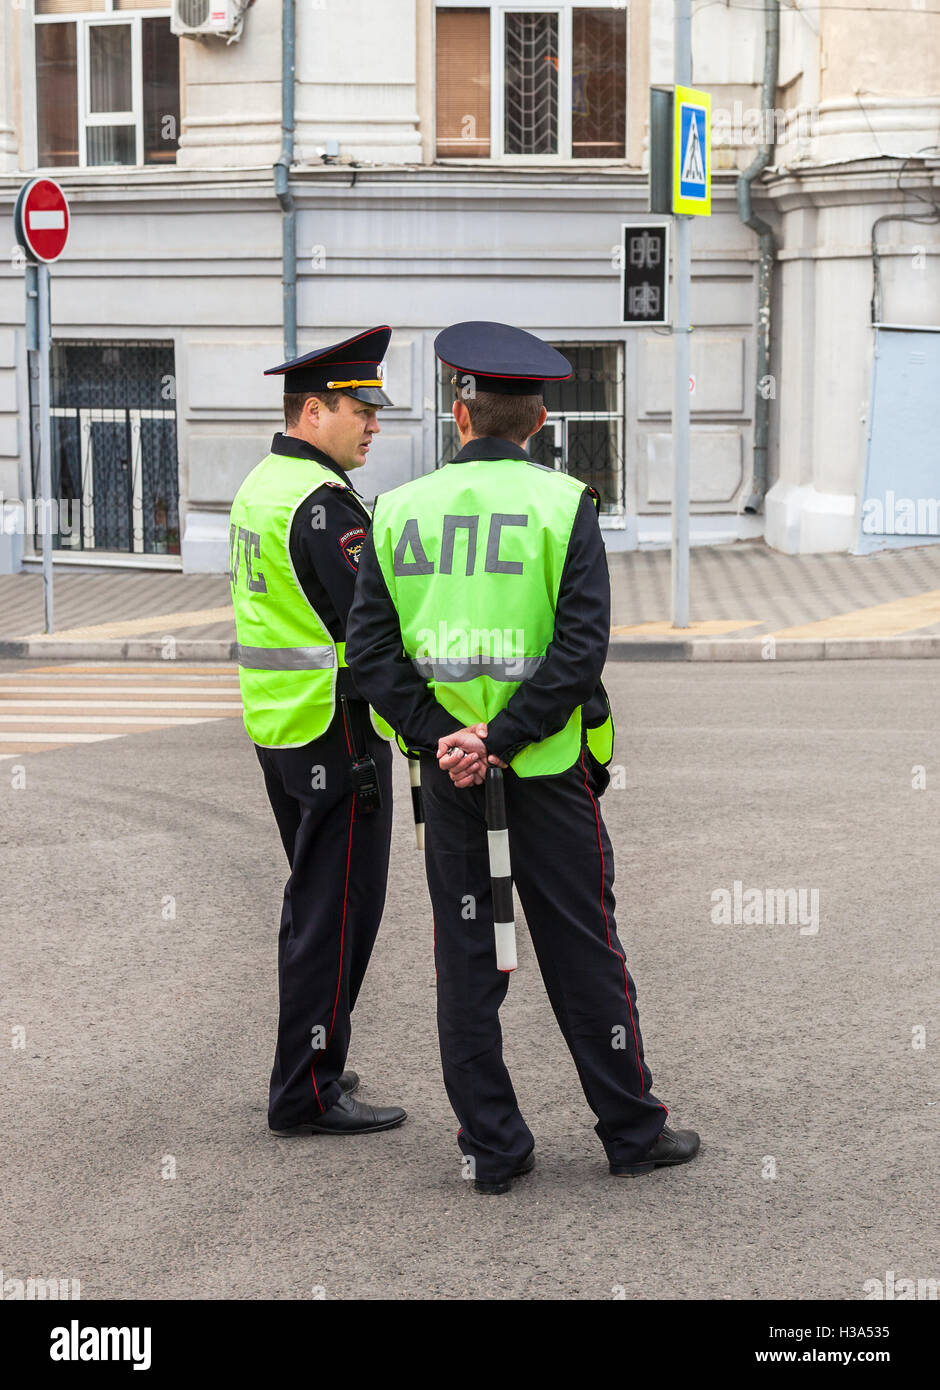 Russian police patrol officers of the State Automobile Inspectorate regulate traffic Stock Photo